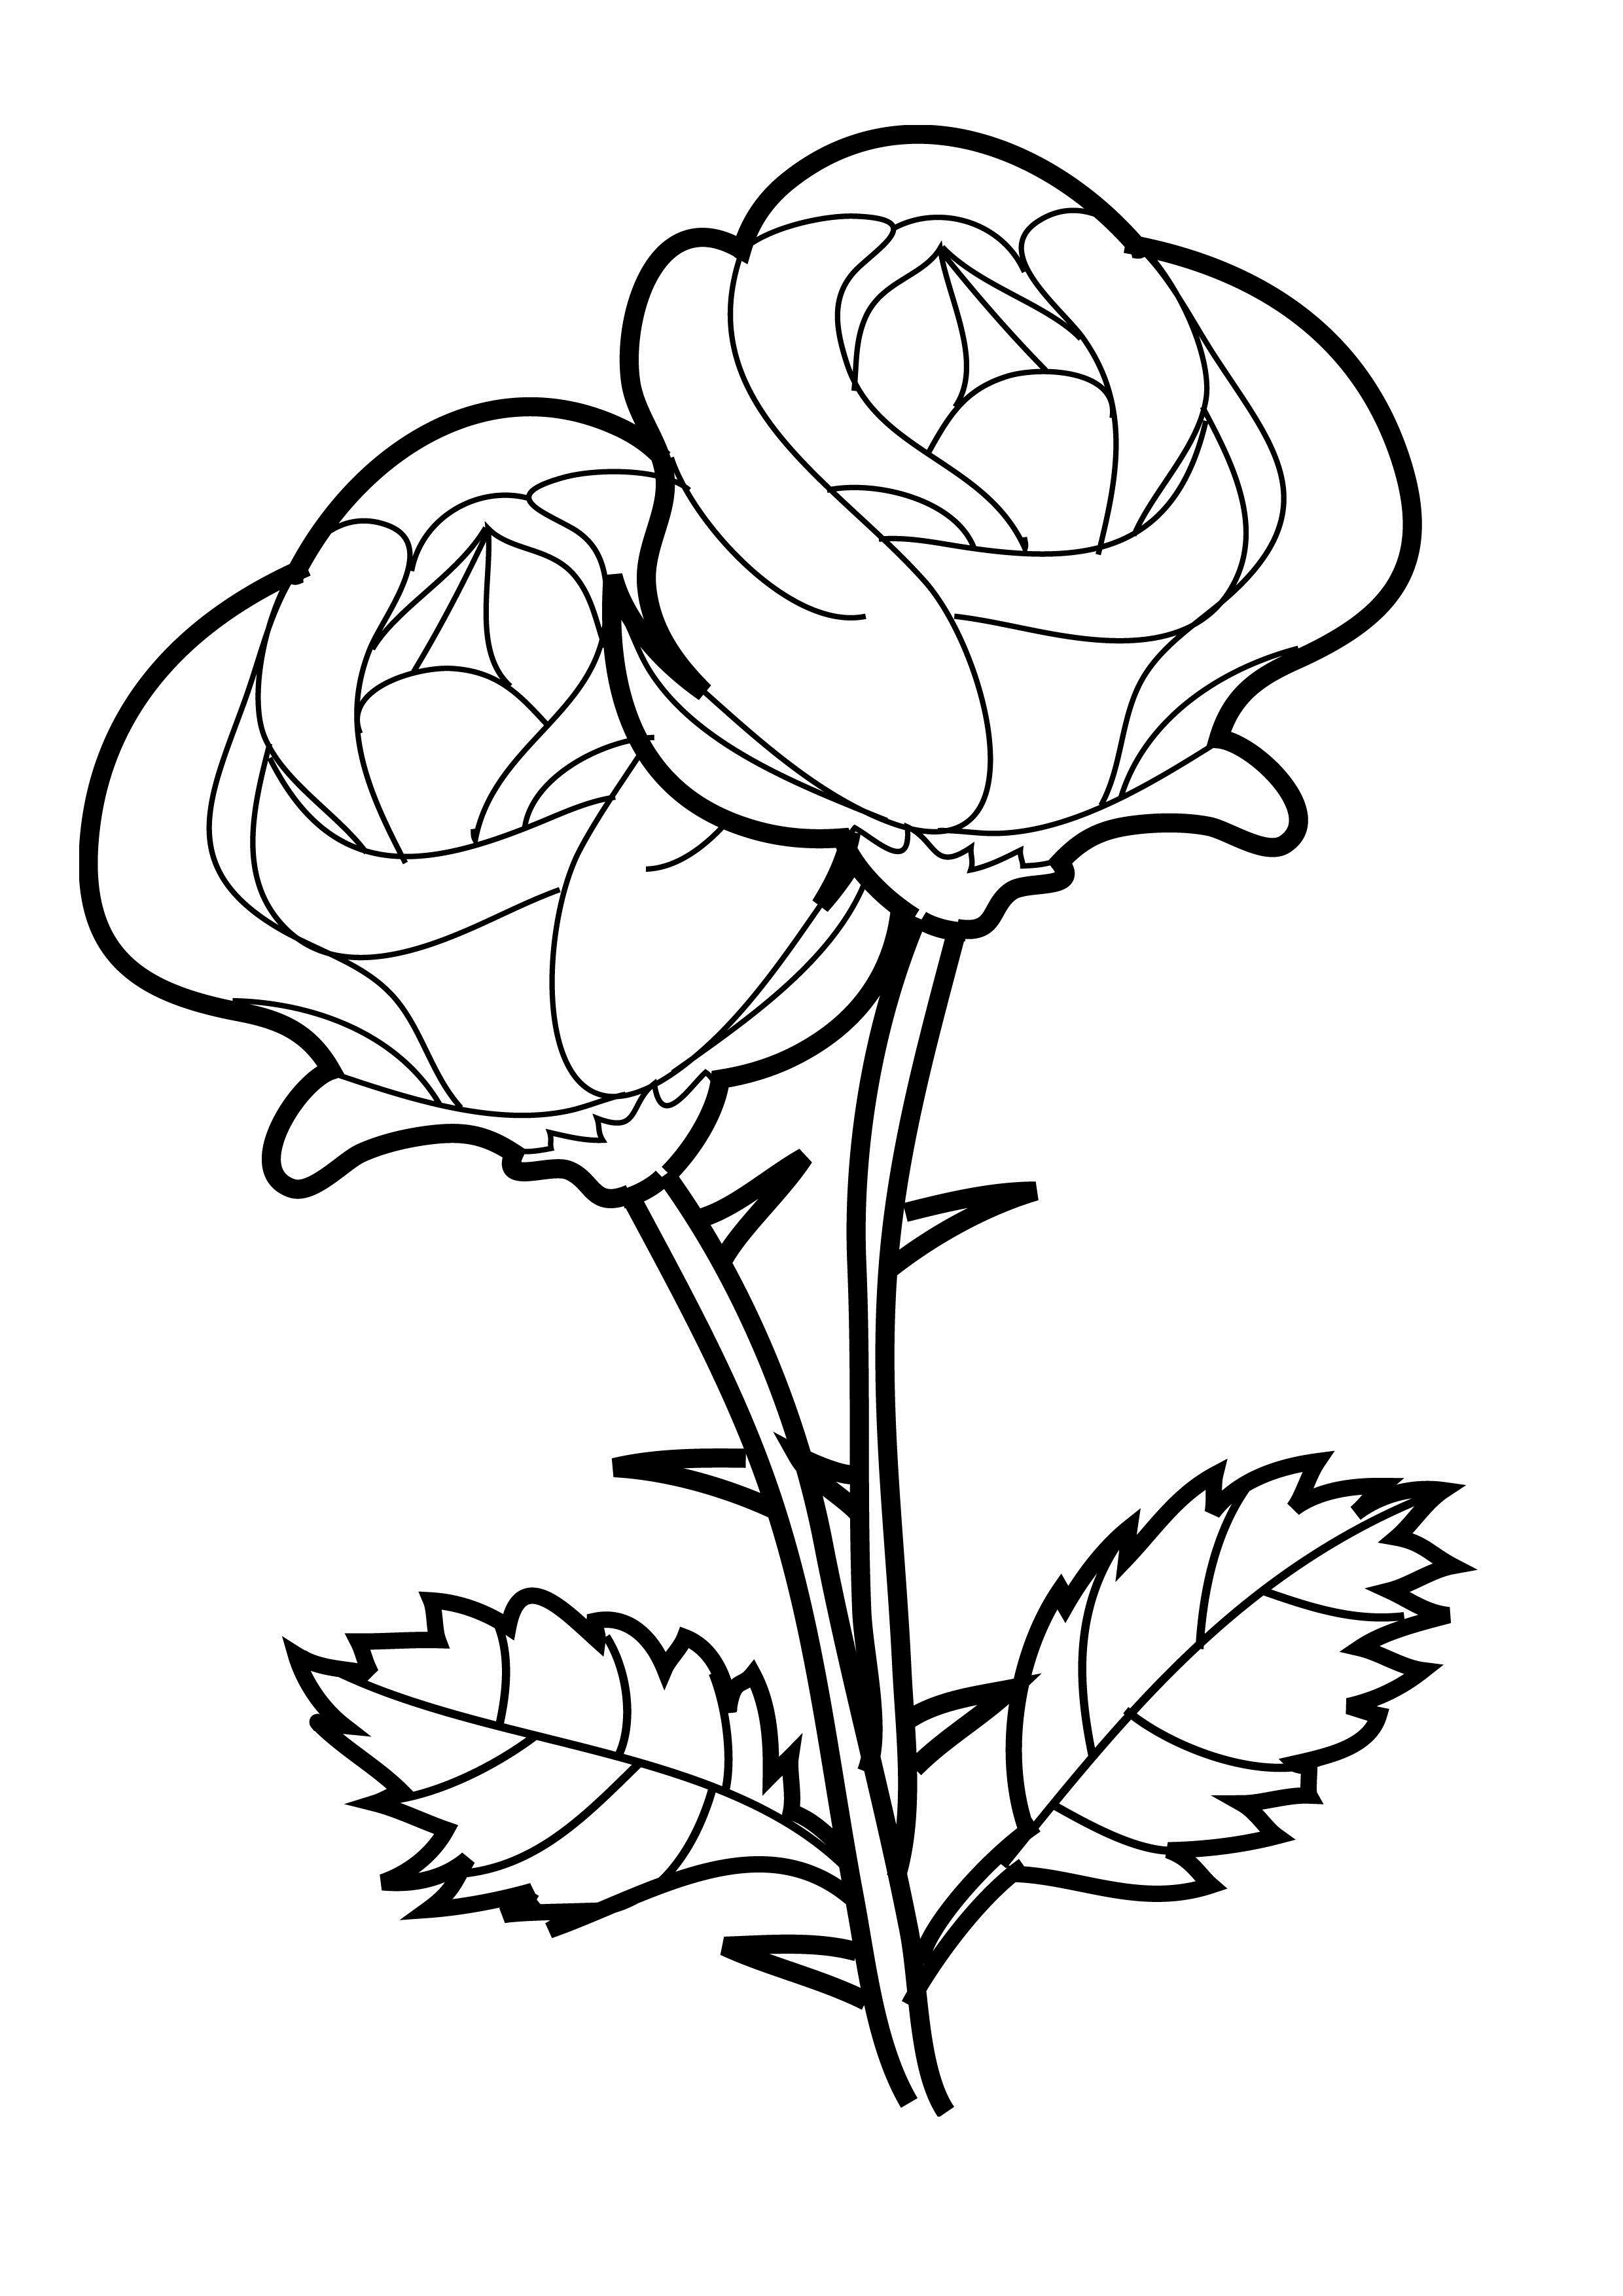 Picture of a rose to color